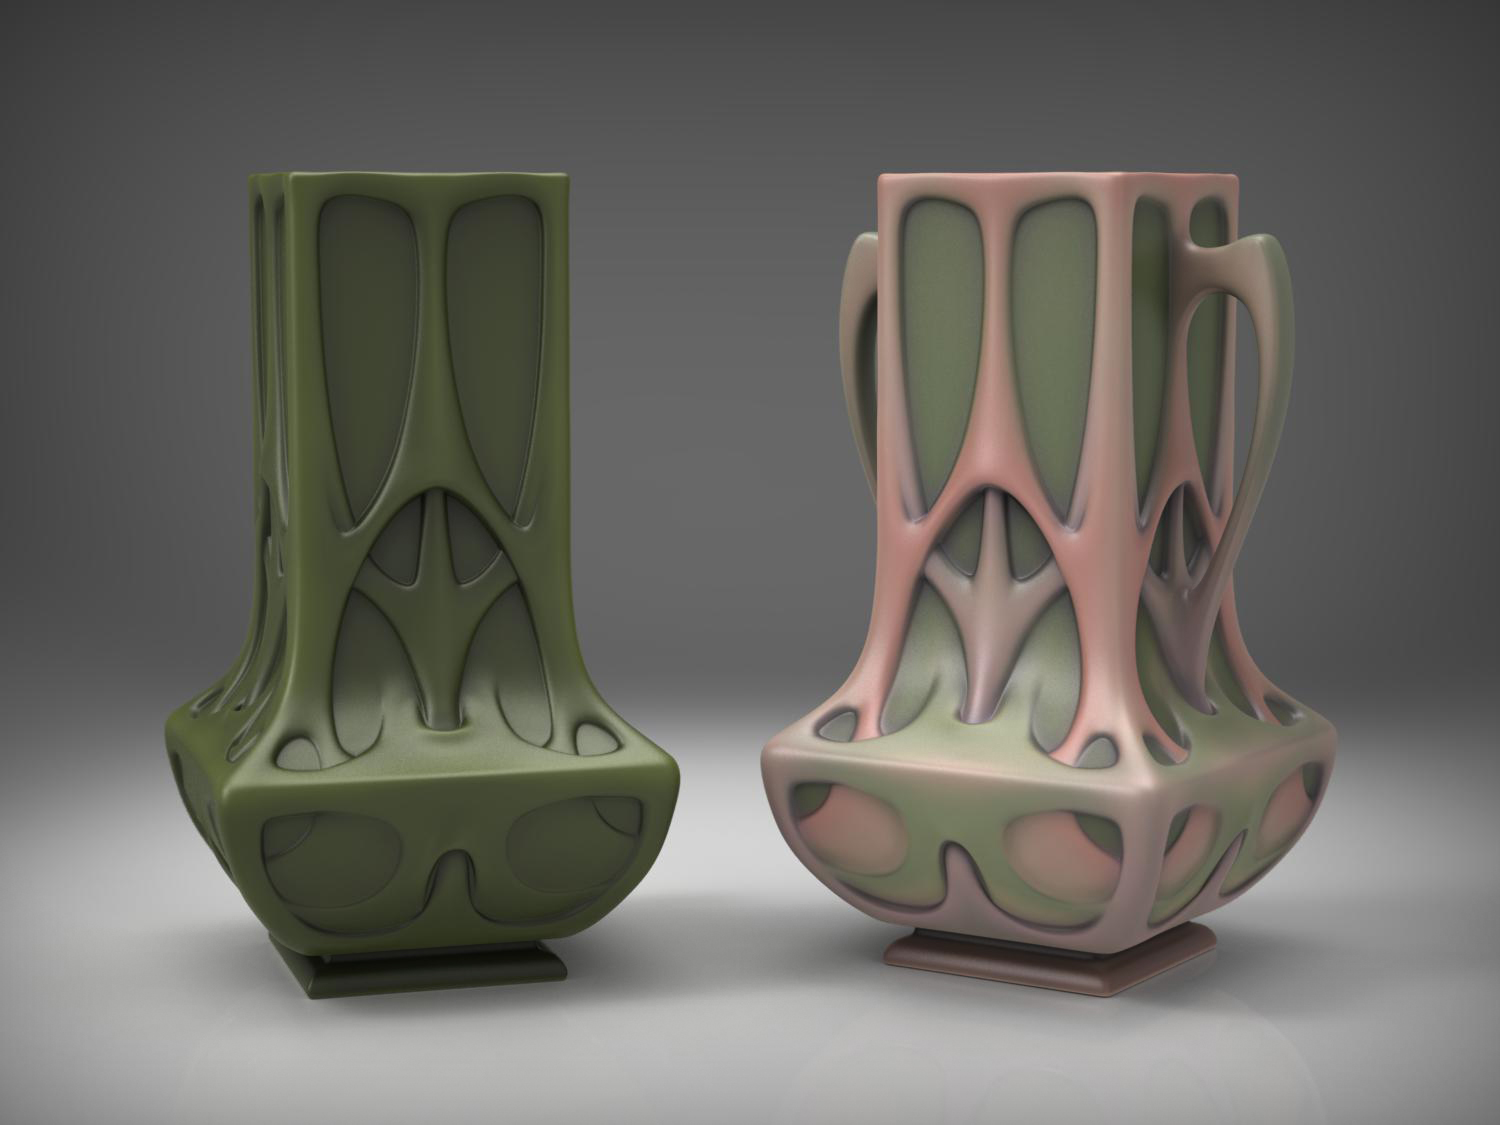 Art Nouveau vases inspired by Hector Guimard & Roseville pottery.Modeled in Maya, textured in ZBrush, rendered in KeyShot.